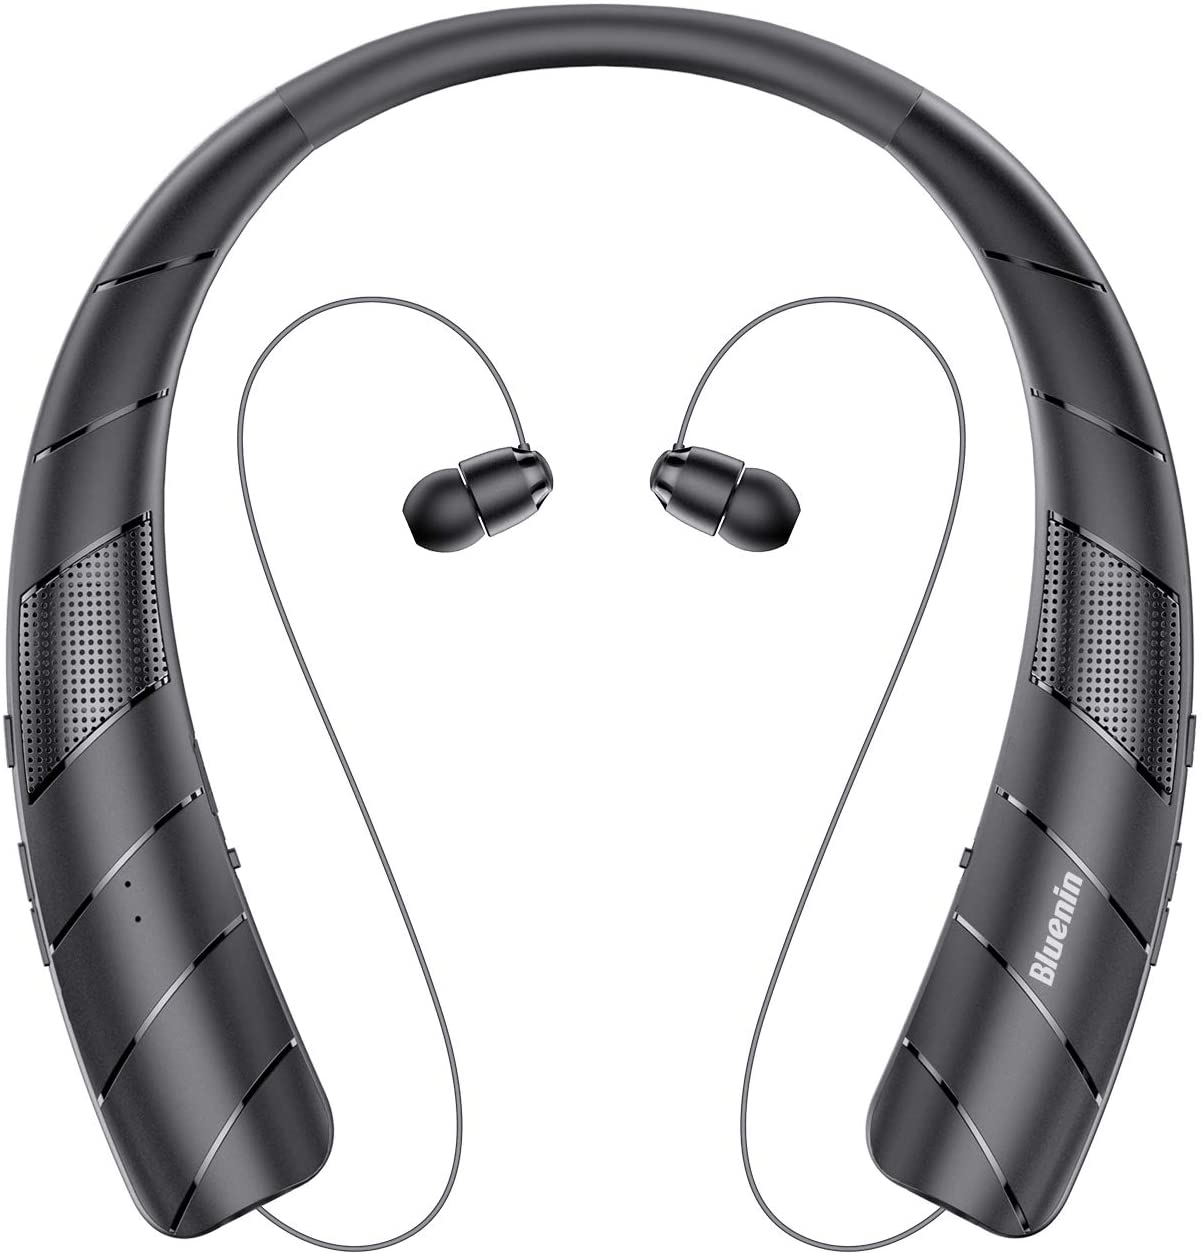 BlueWave Pro1 Headphones Speakers 2-IN-1